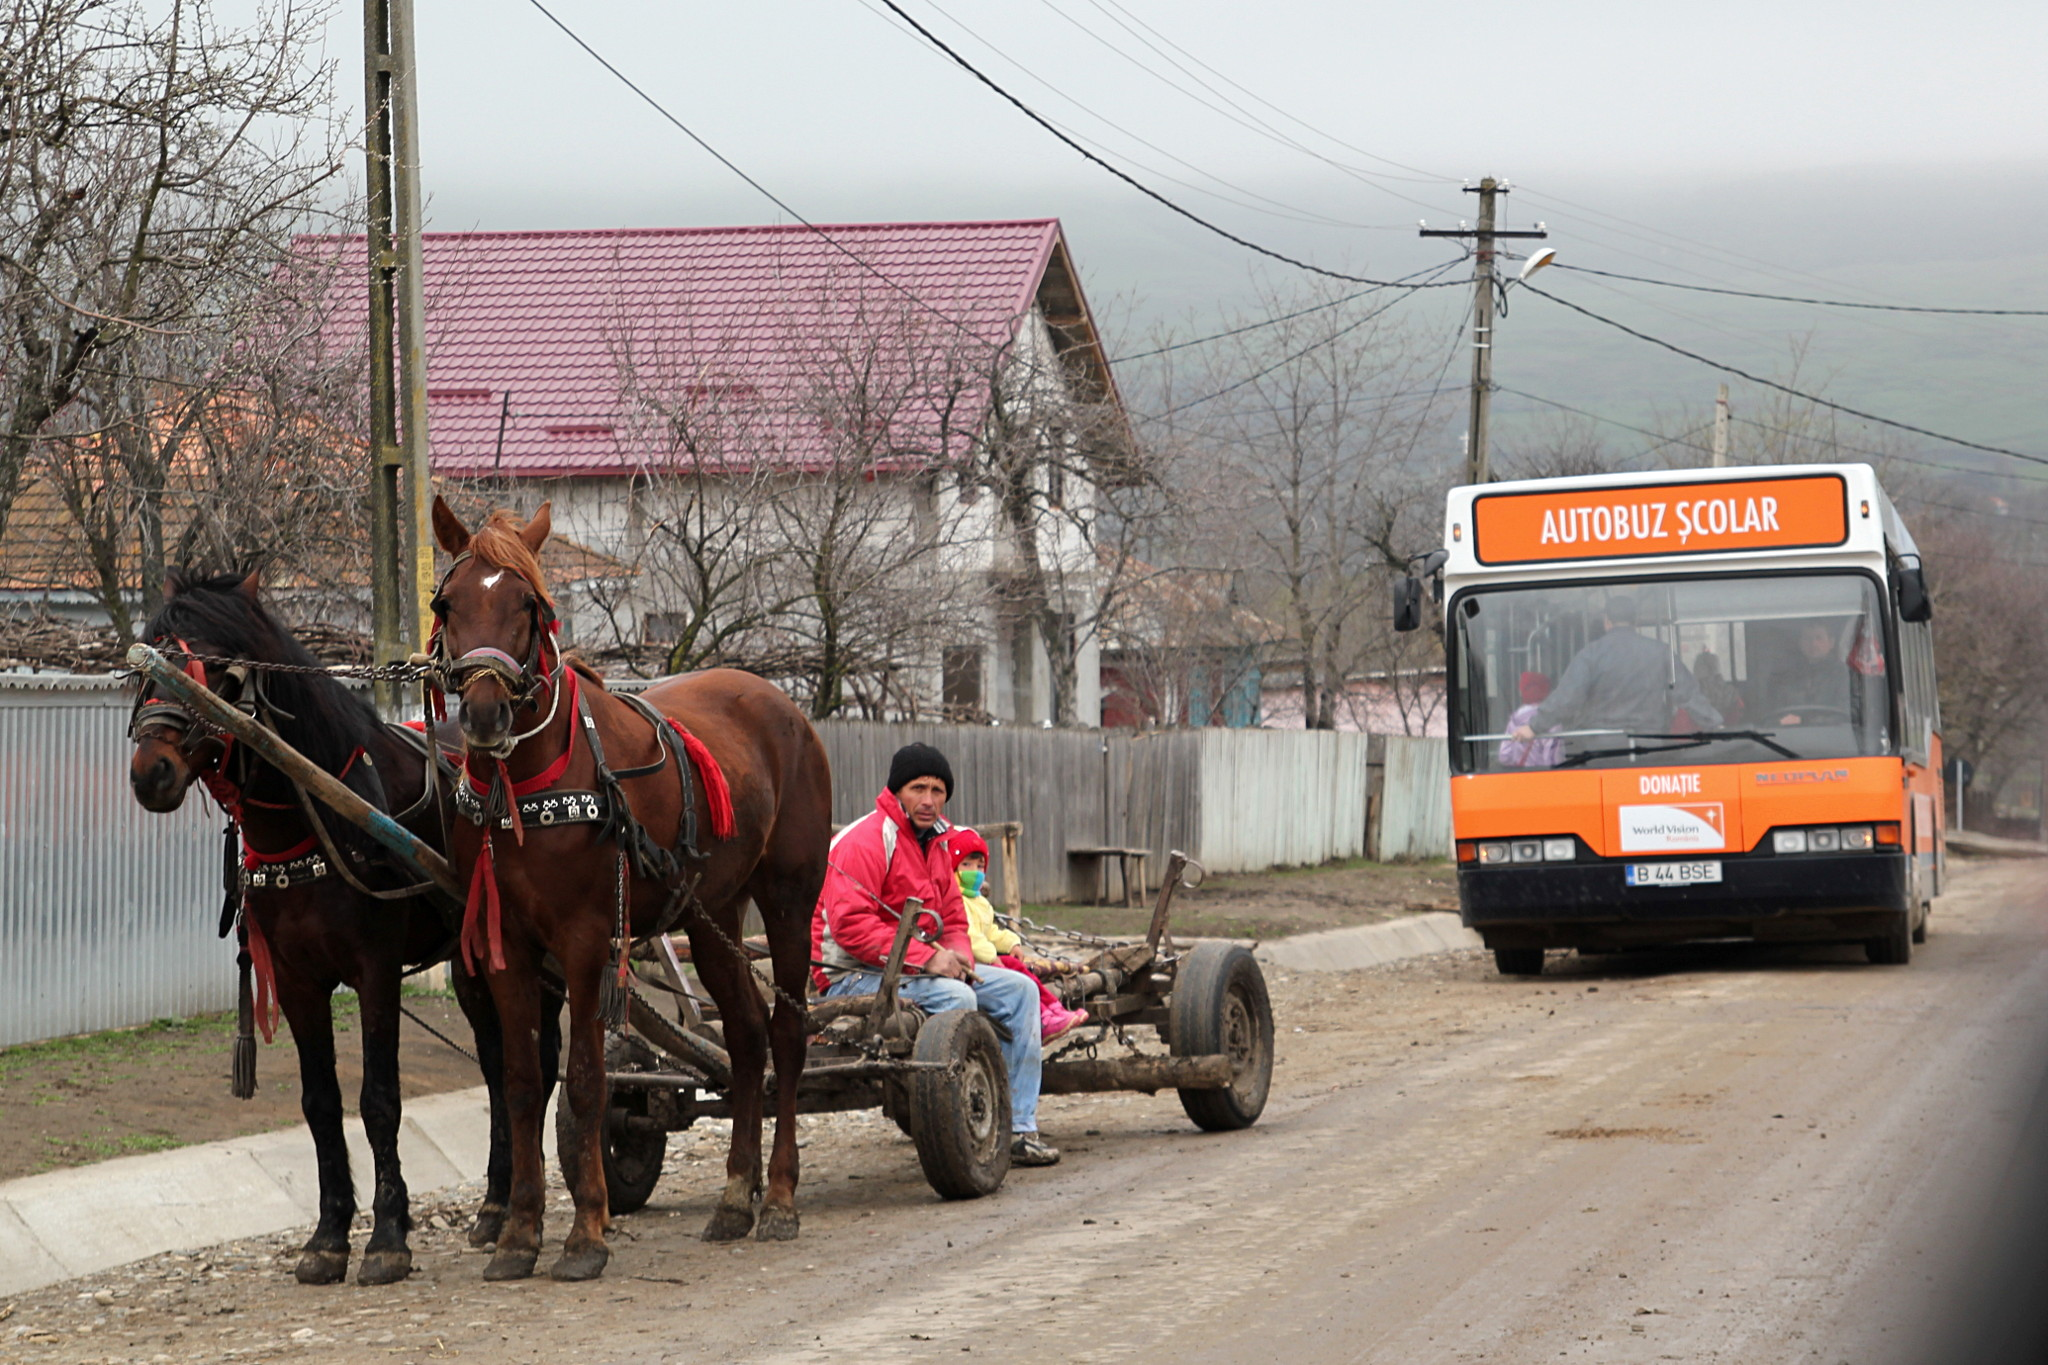 The after-school bus - Drăxeni, Vaslui district (photo G. Comai)